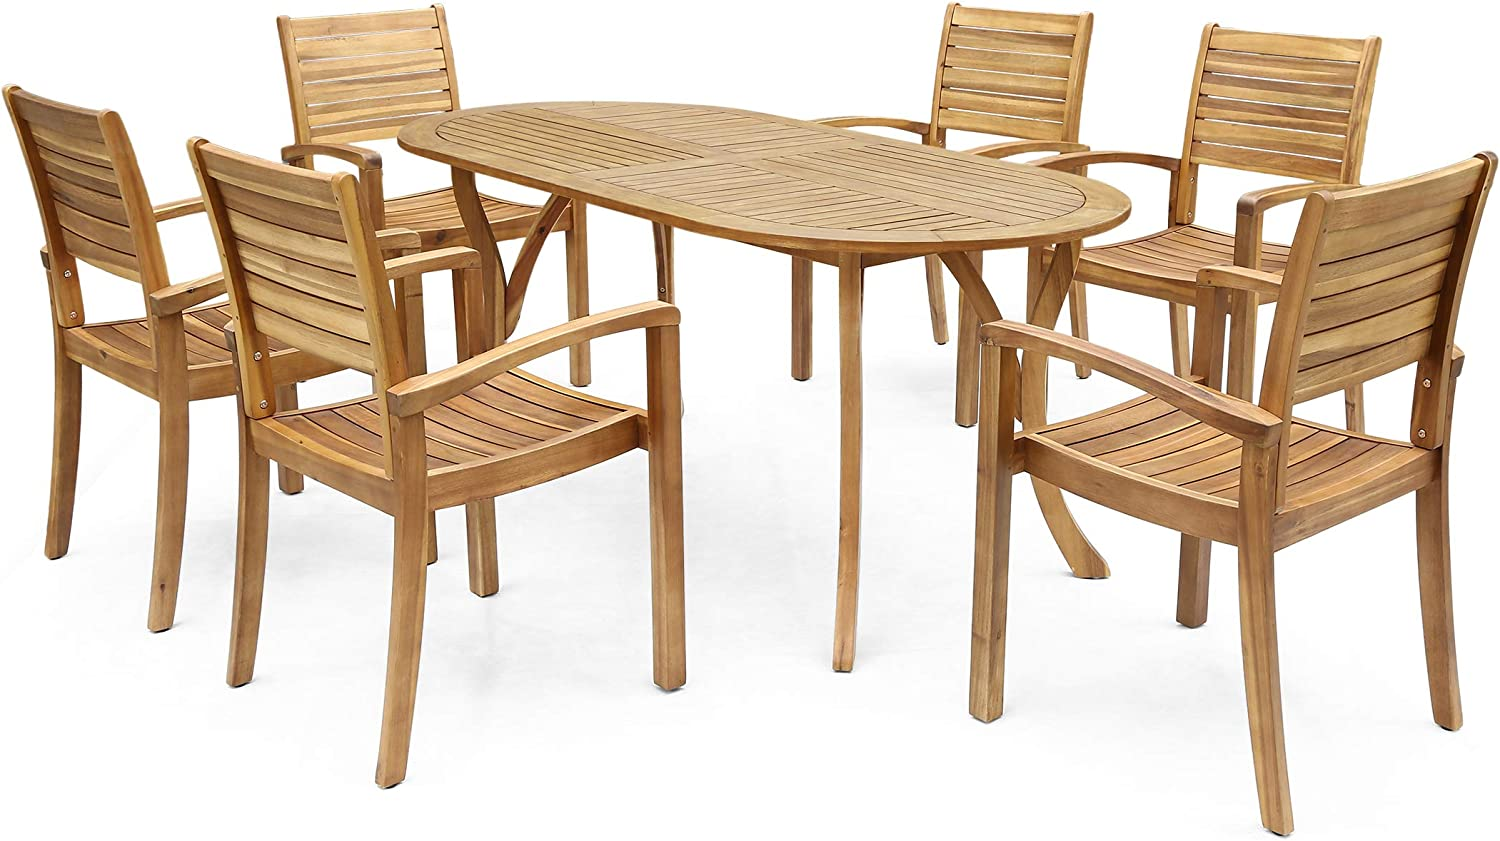 Christopher Knight Home 306487 Powell Outdoor 6-Seater Oval Acacia Wood Dining Set, Teak Finish 81UdyFjLeMLSL1500_